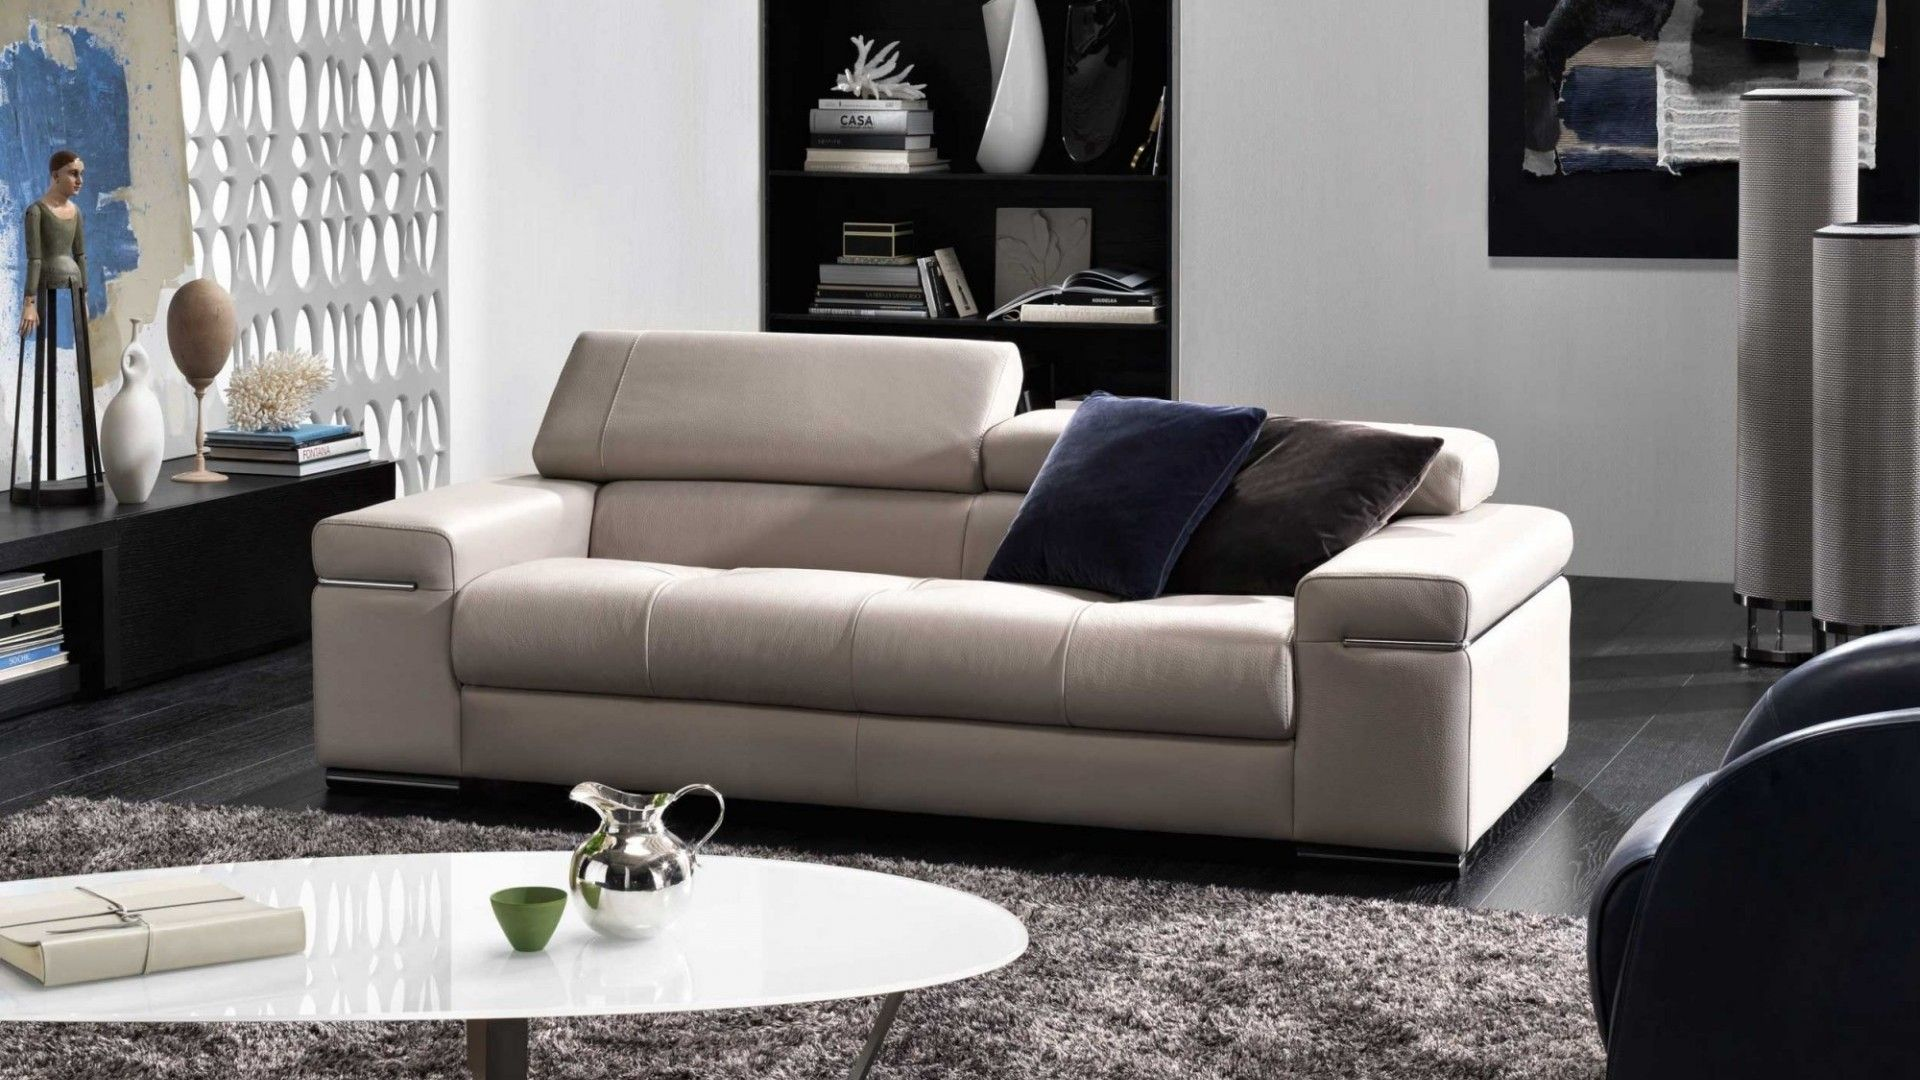 Natuzzi Italia Leather Avana Sofa